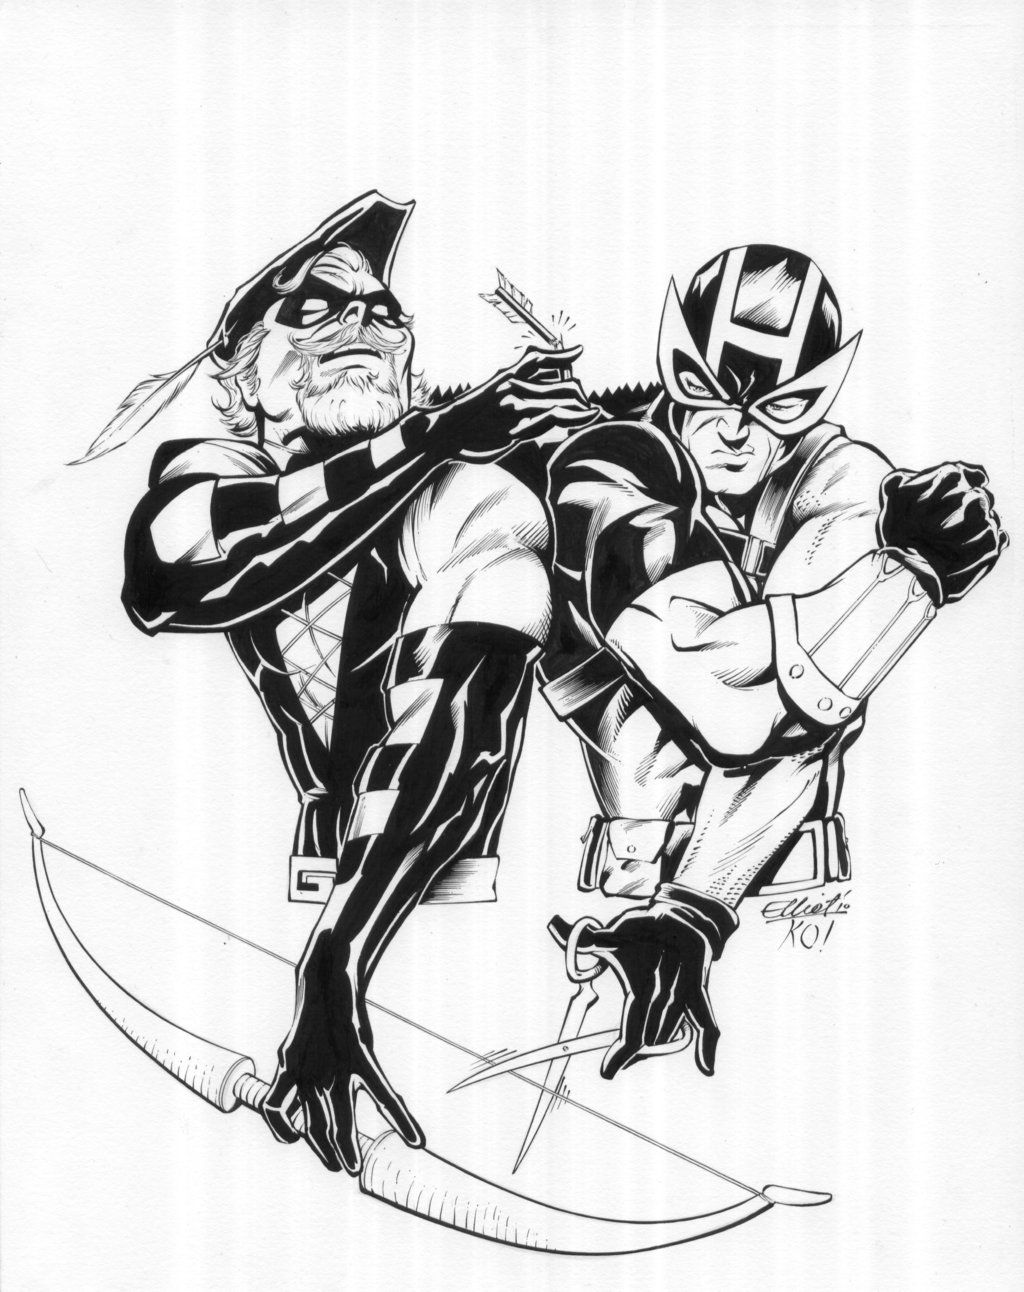 Green Arrow Vs Hawkeye By Tonykordos On Deviantart Green Arrow Black And White Comics Hawkeye